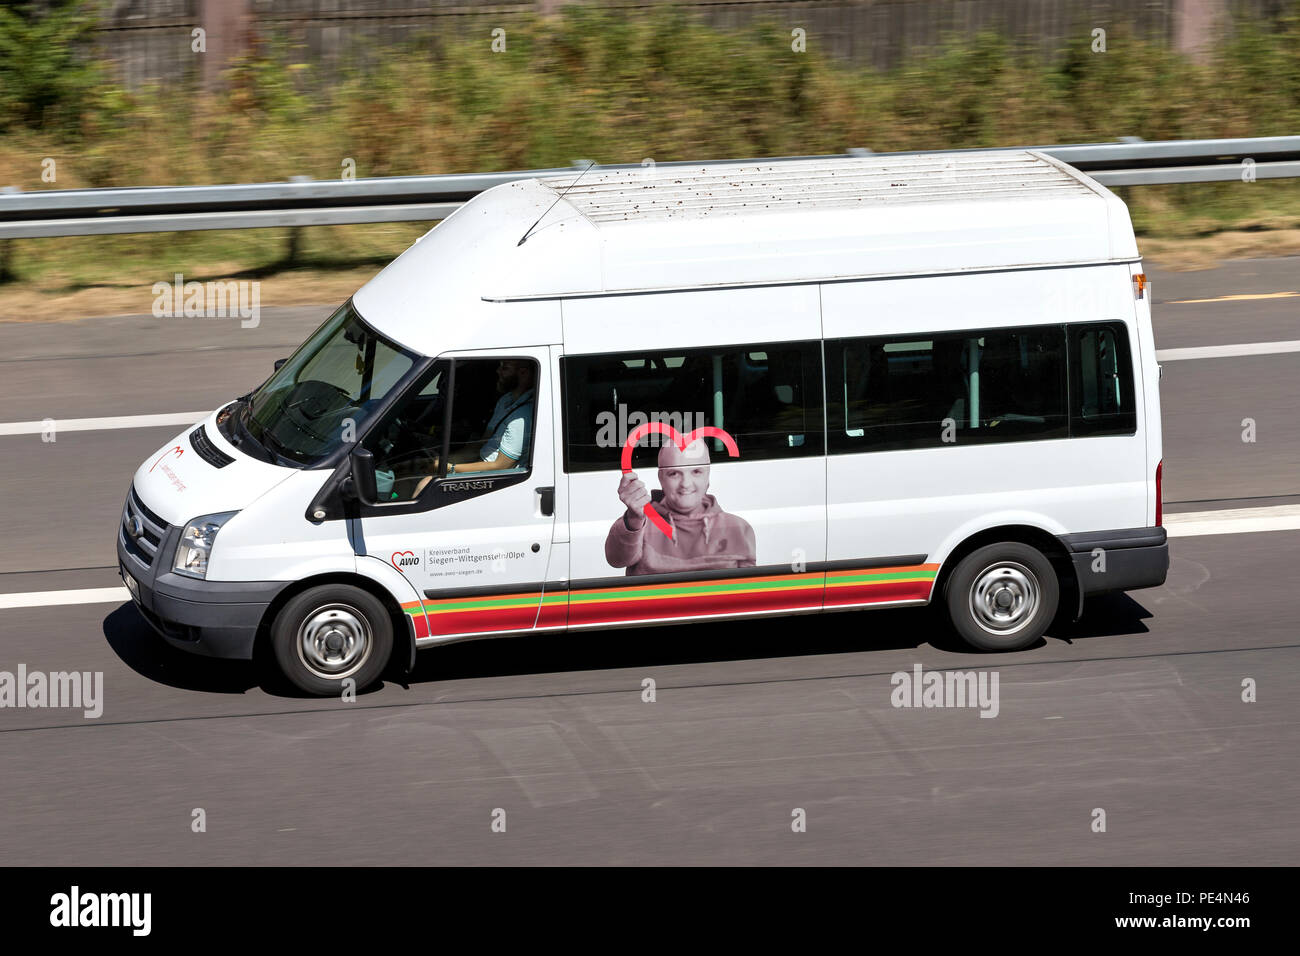 AWO minibus on motorway. AWO is one of the top six associations of the free welfare in Germany. - Stock Image